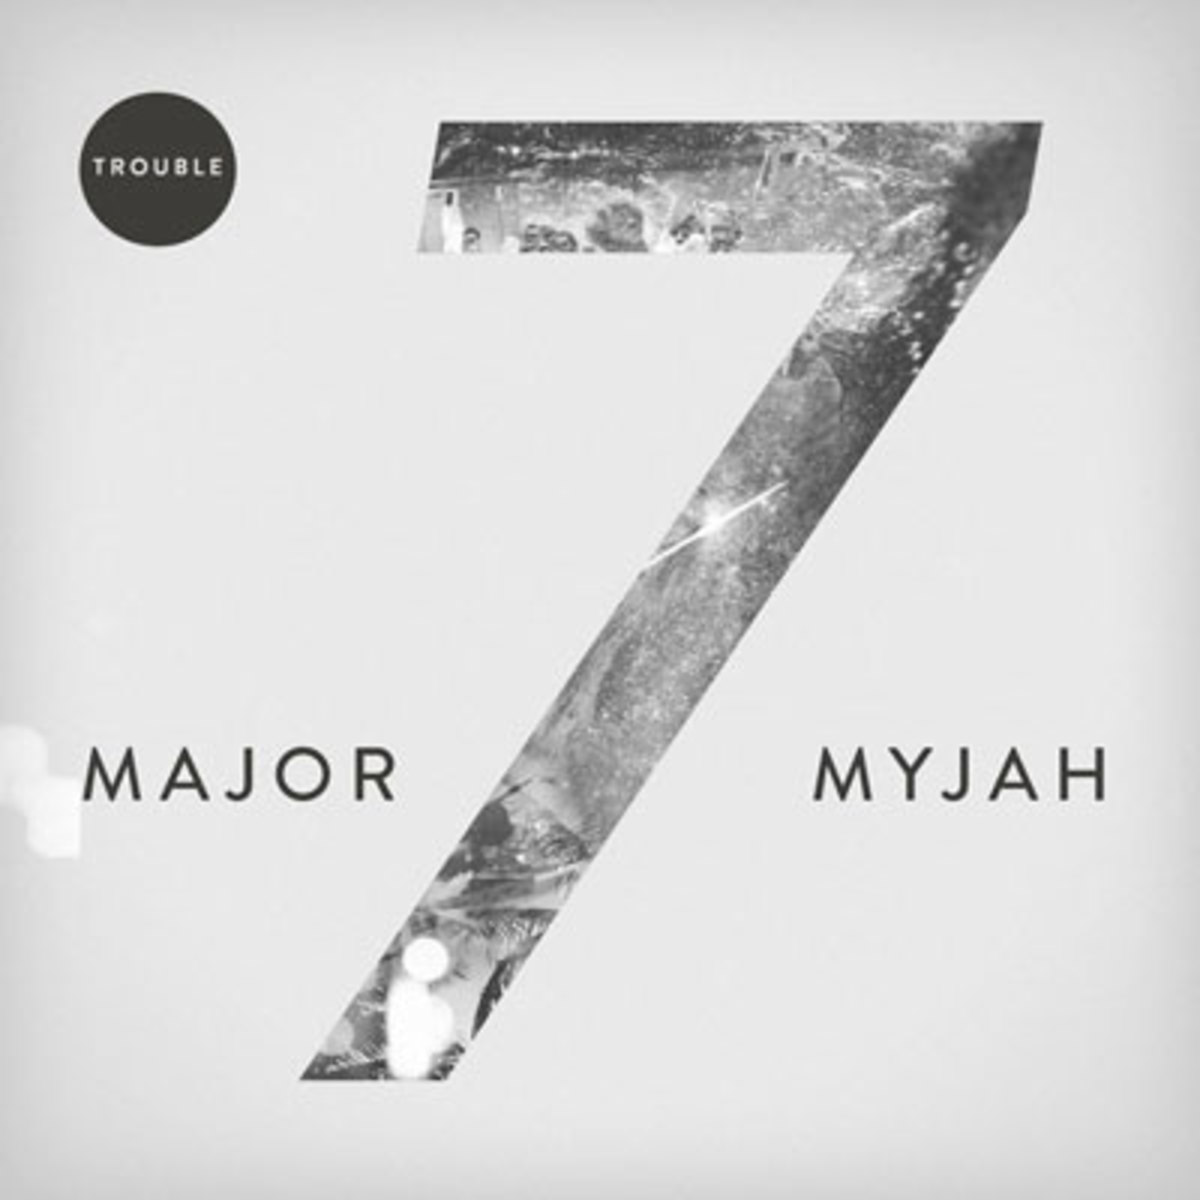 major-myjah-trouble.jpg